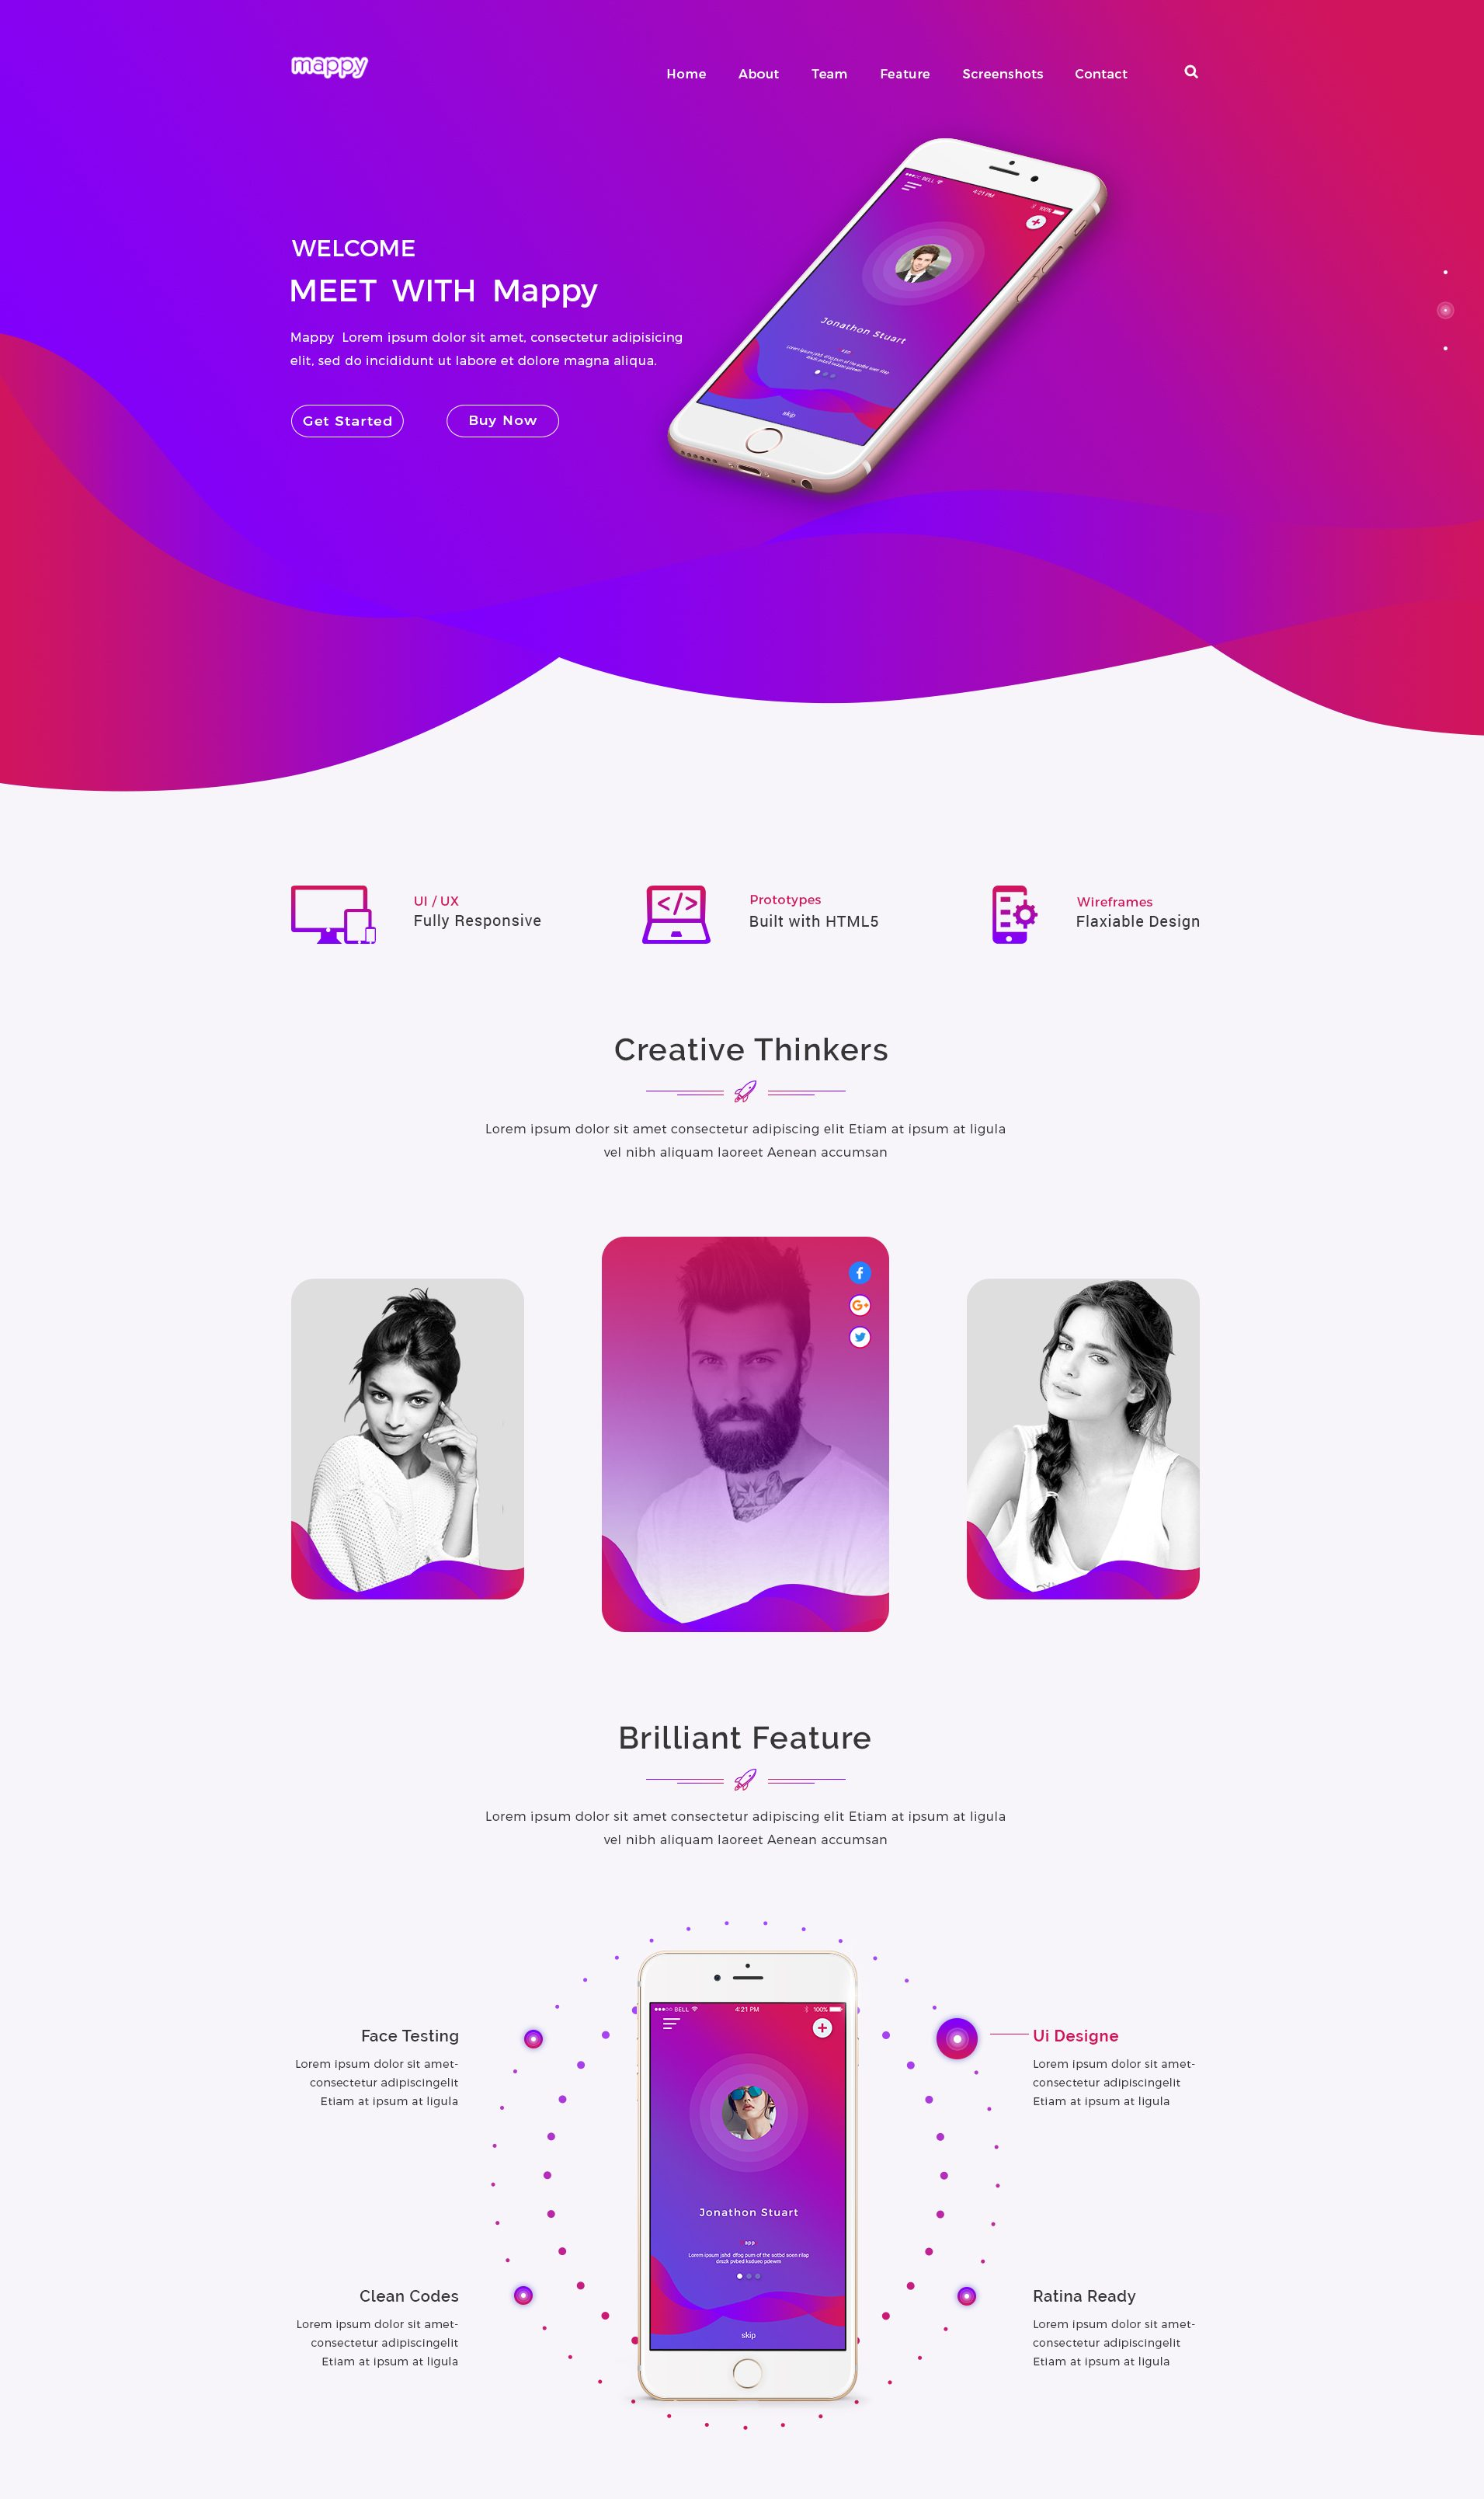 organic shapes in web design